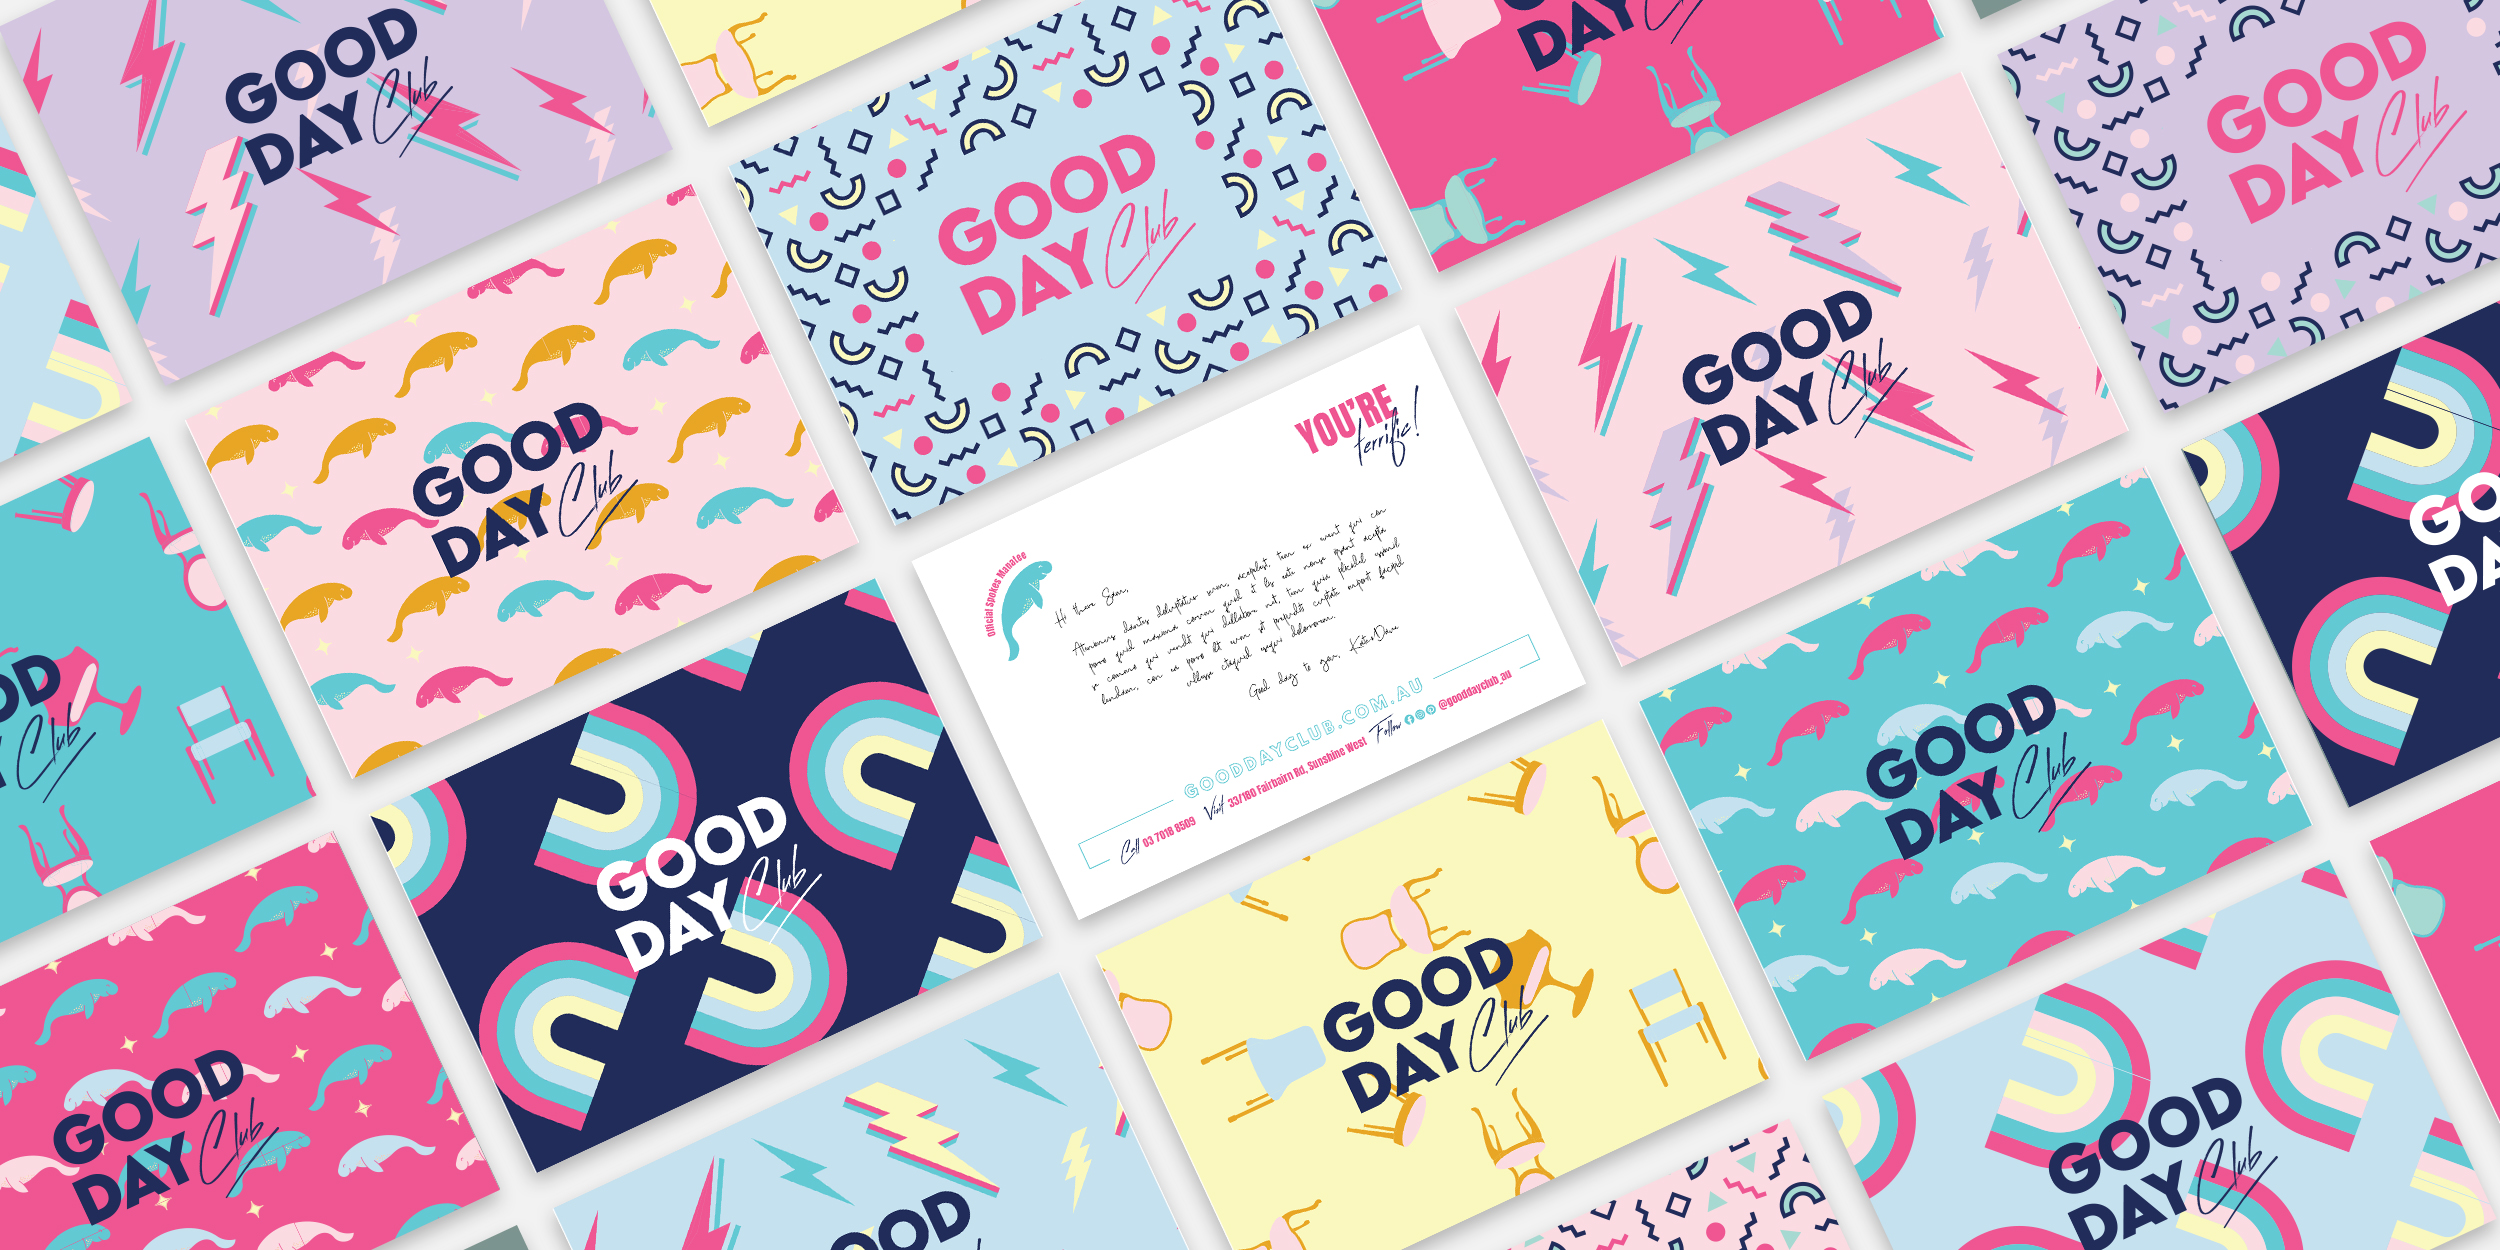 Good Day Club rebrand postcards with custom colourful patterns